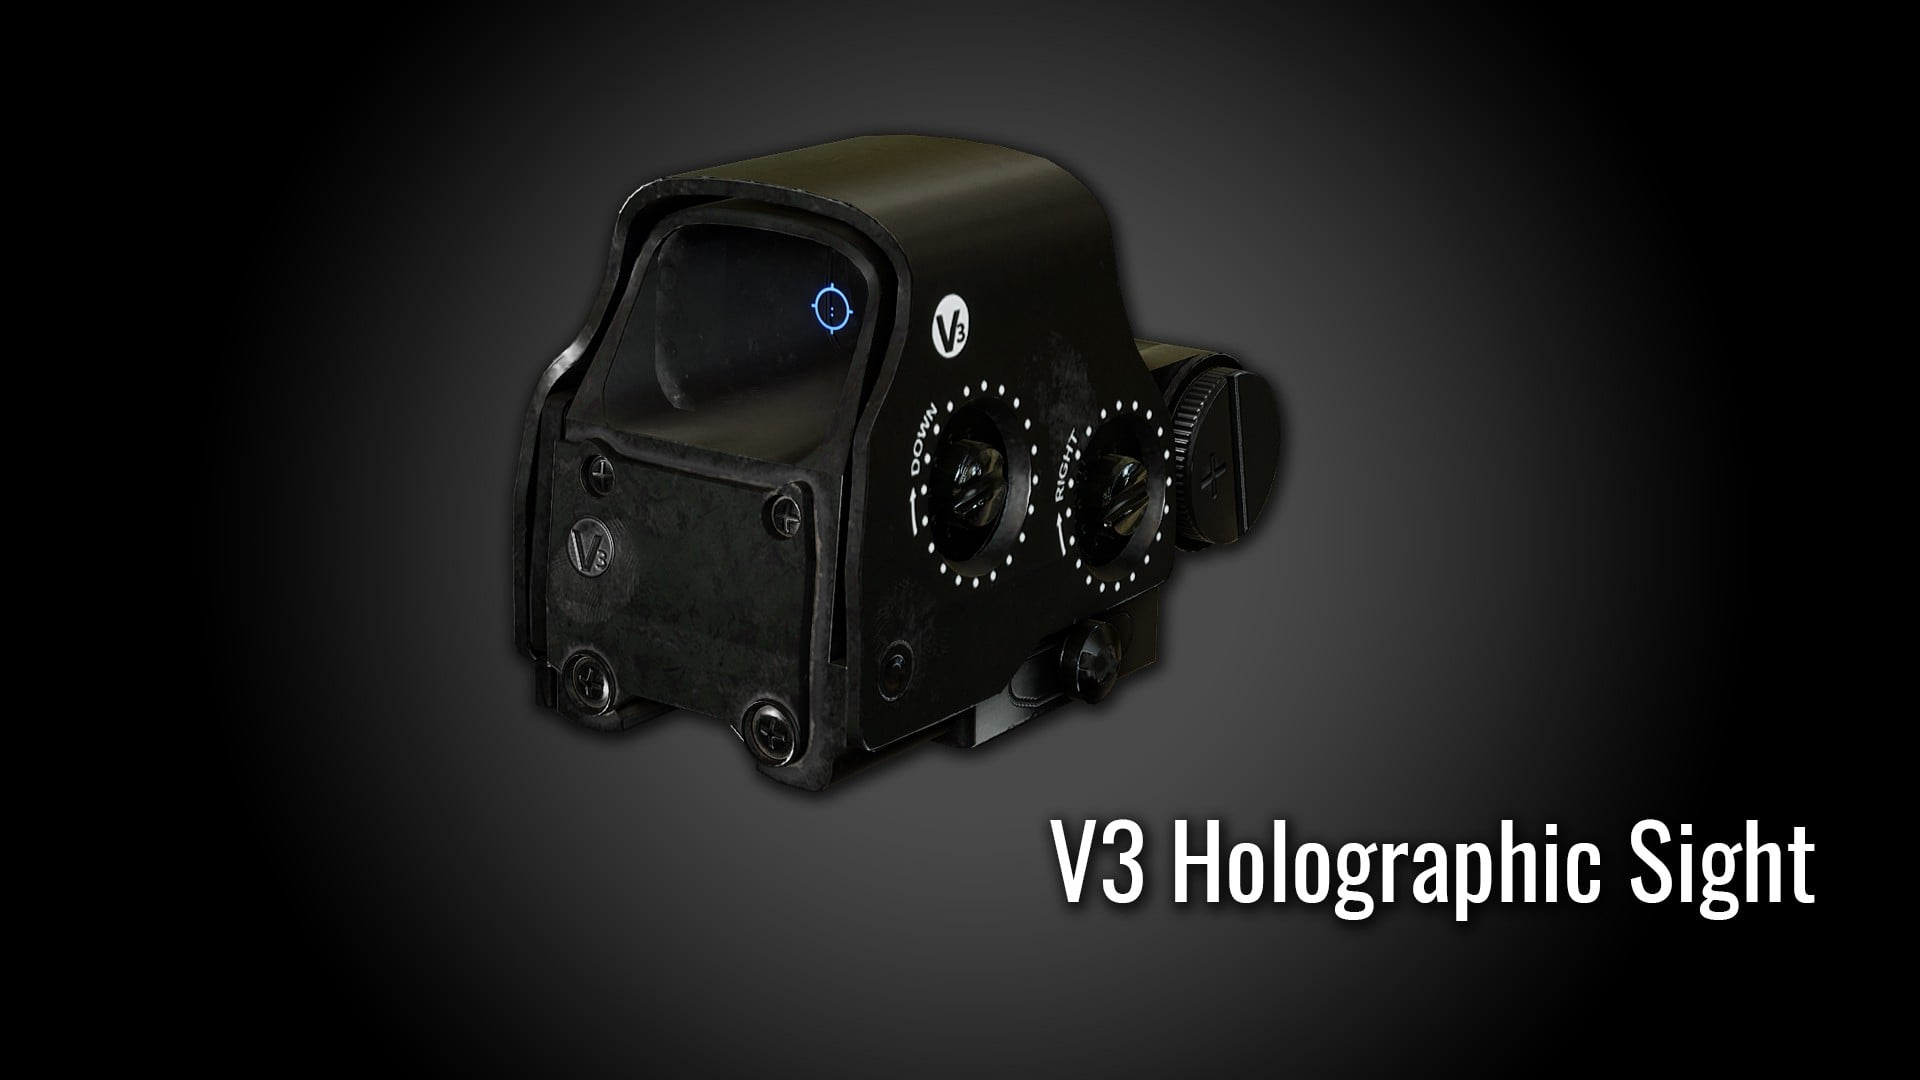 V3 Holographic Sight